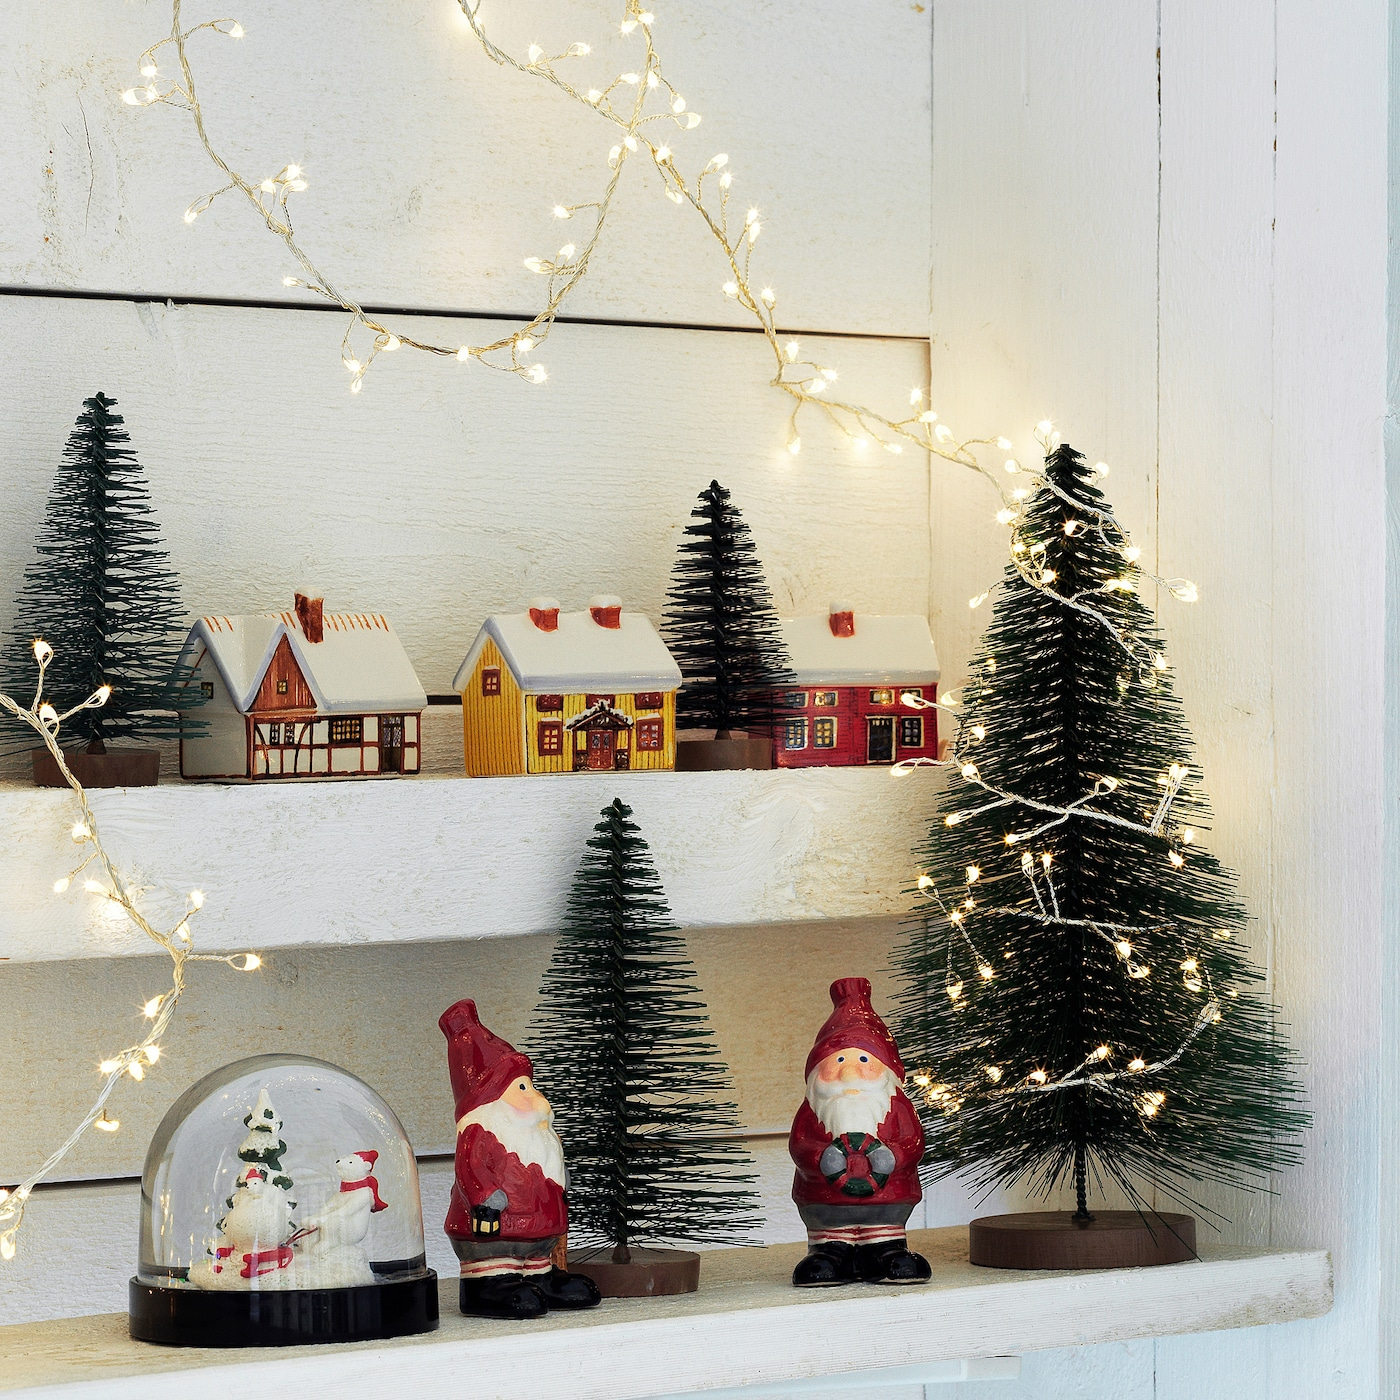 Foto Di Decorazioni Di Natale.Vinter 2020 Set Di 3 Decorazioni Albero Di Natale Verde Ikea It